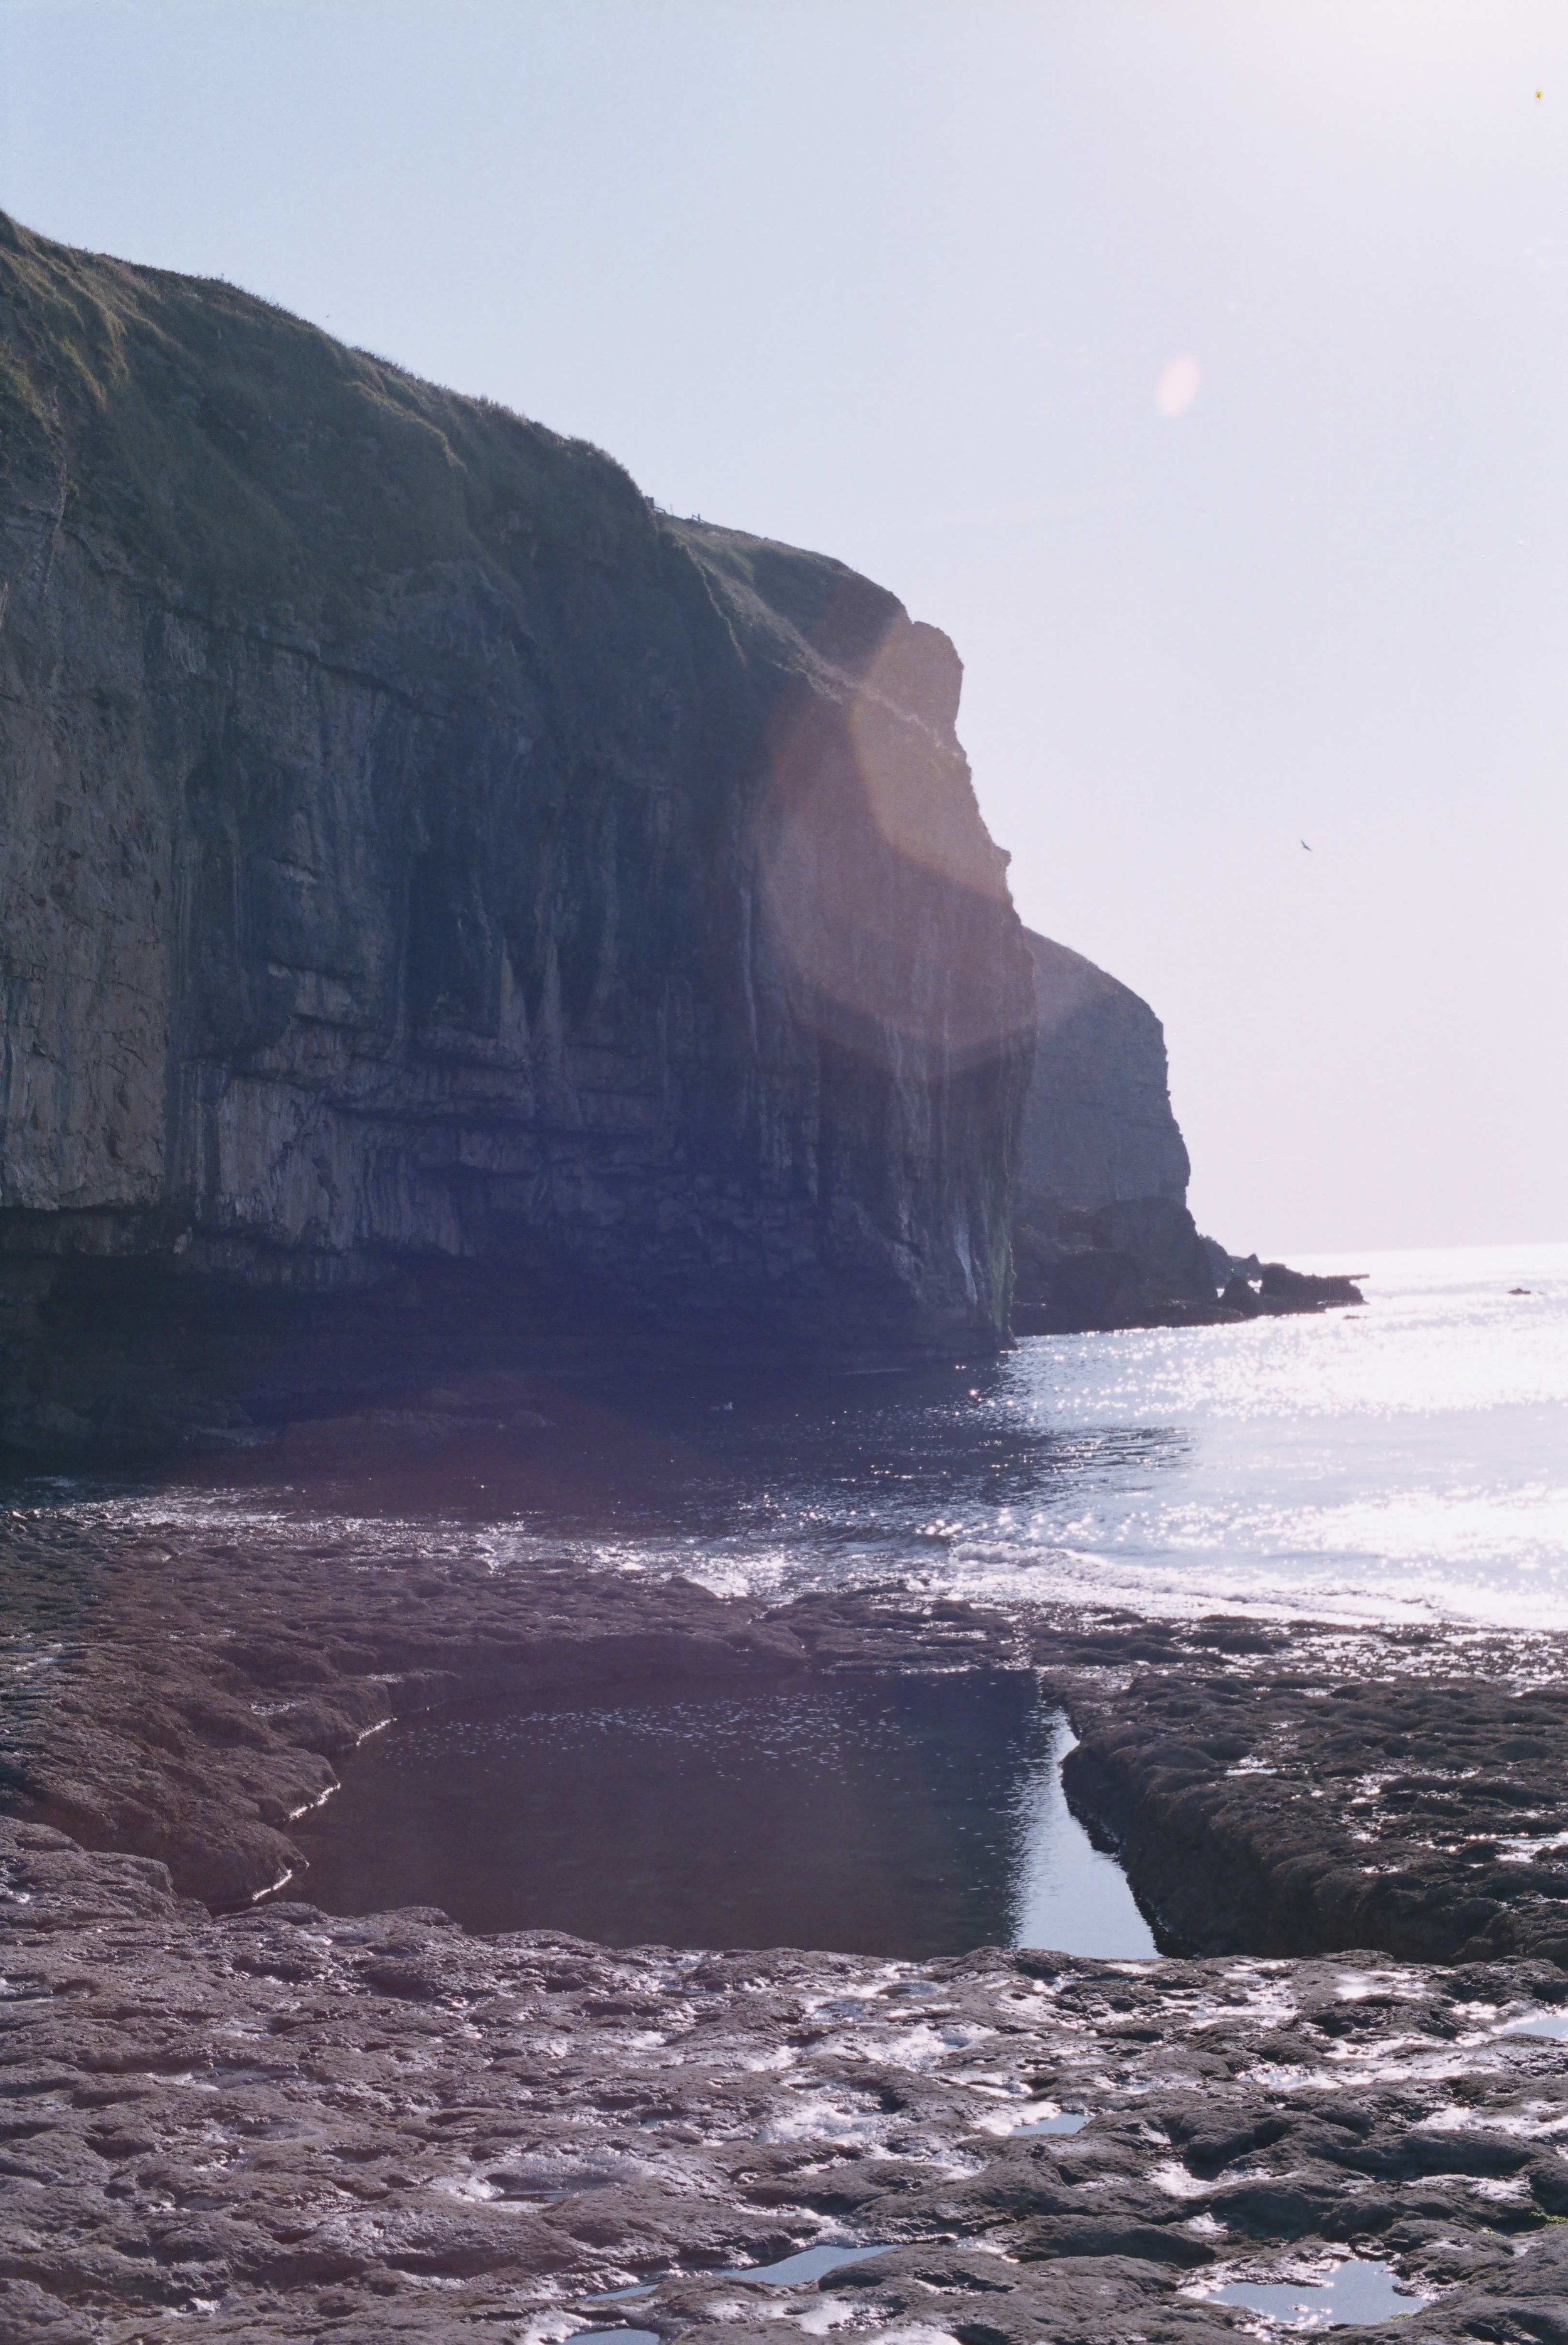 Now managed by the National Trust, the cliffs at Dancing Ledge were quarried a few centuries back. Boats would moor at the ledge, unload the horses and carts before blasting the rock cliffs for stone which was used locally and transported to places like London to pave its posh squares…